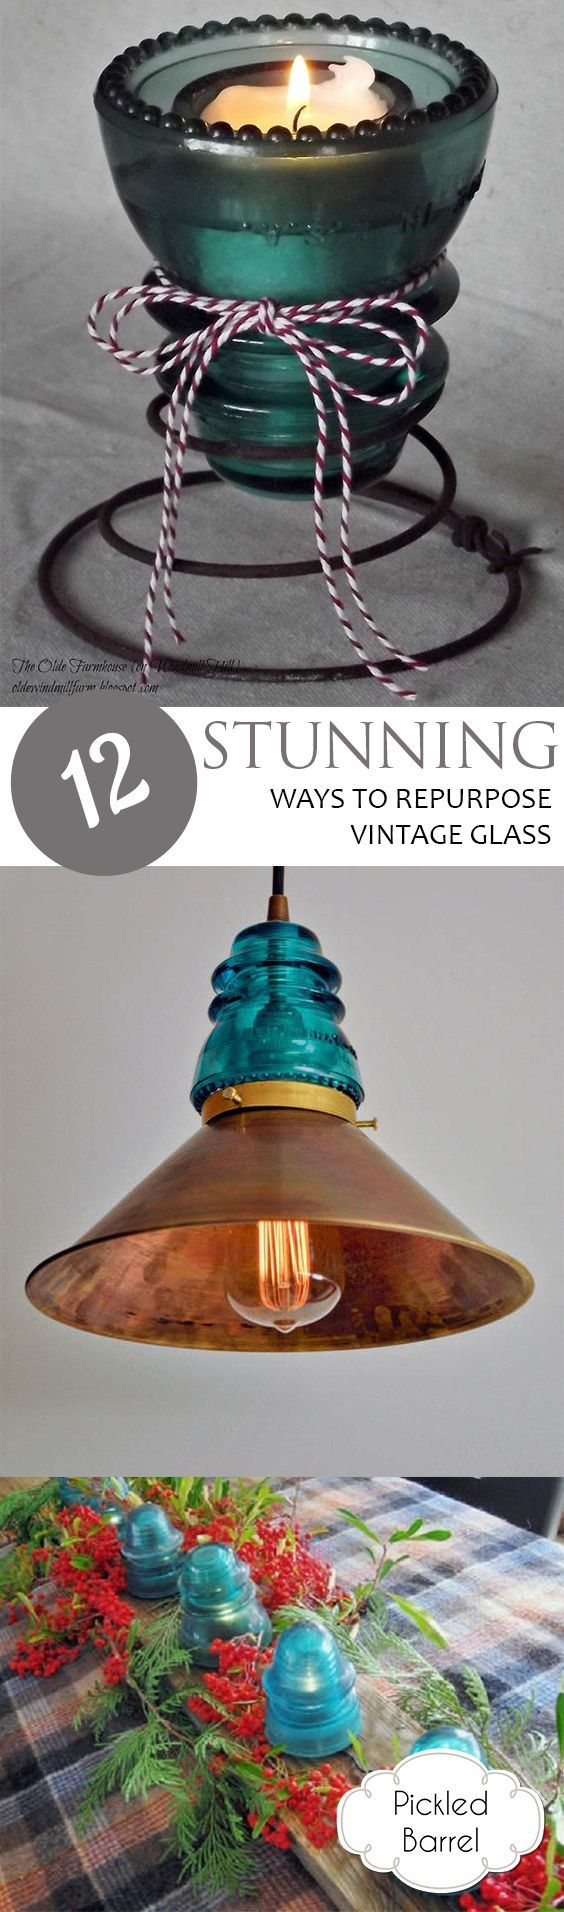 12 Stunning Ways to Repurpose Vintage Glass -